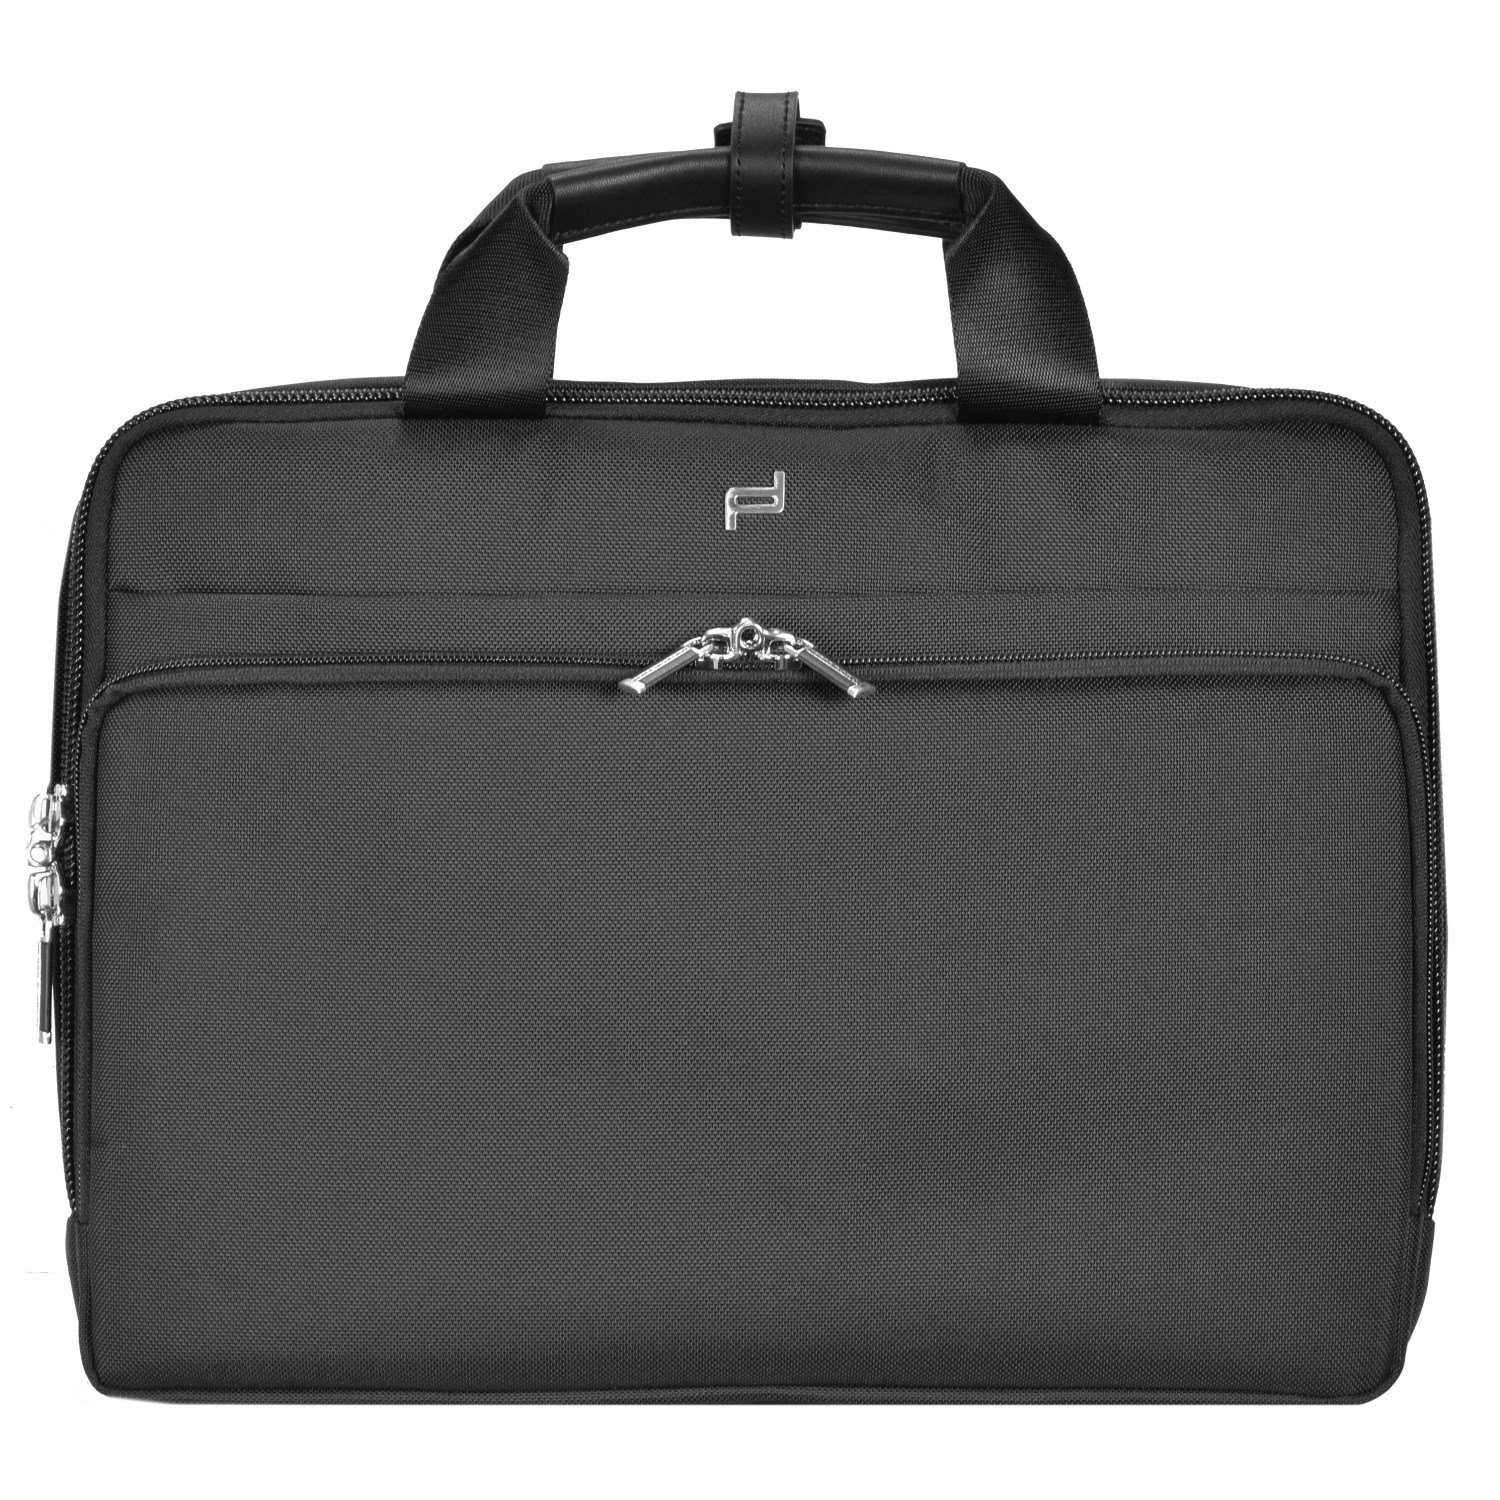 PORSCHE Design Roadster 3.0 BriefBag MH Aktentasche Leder 39 cm Laptopfach